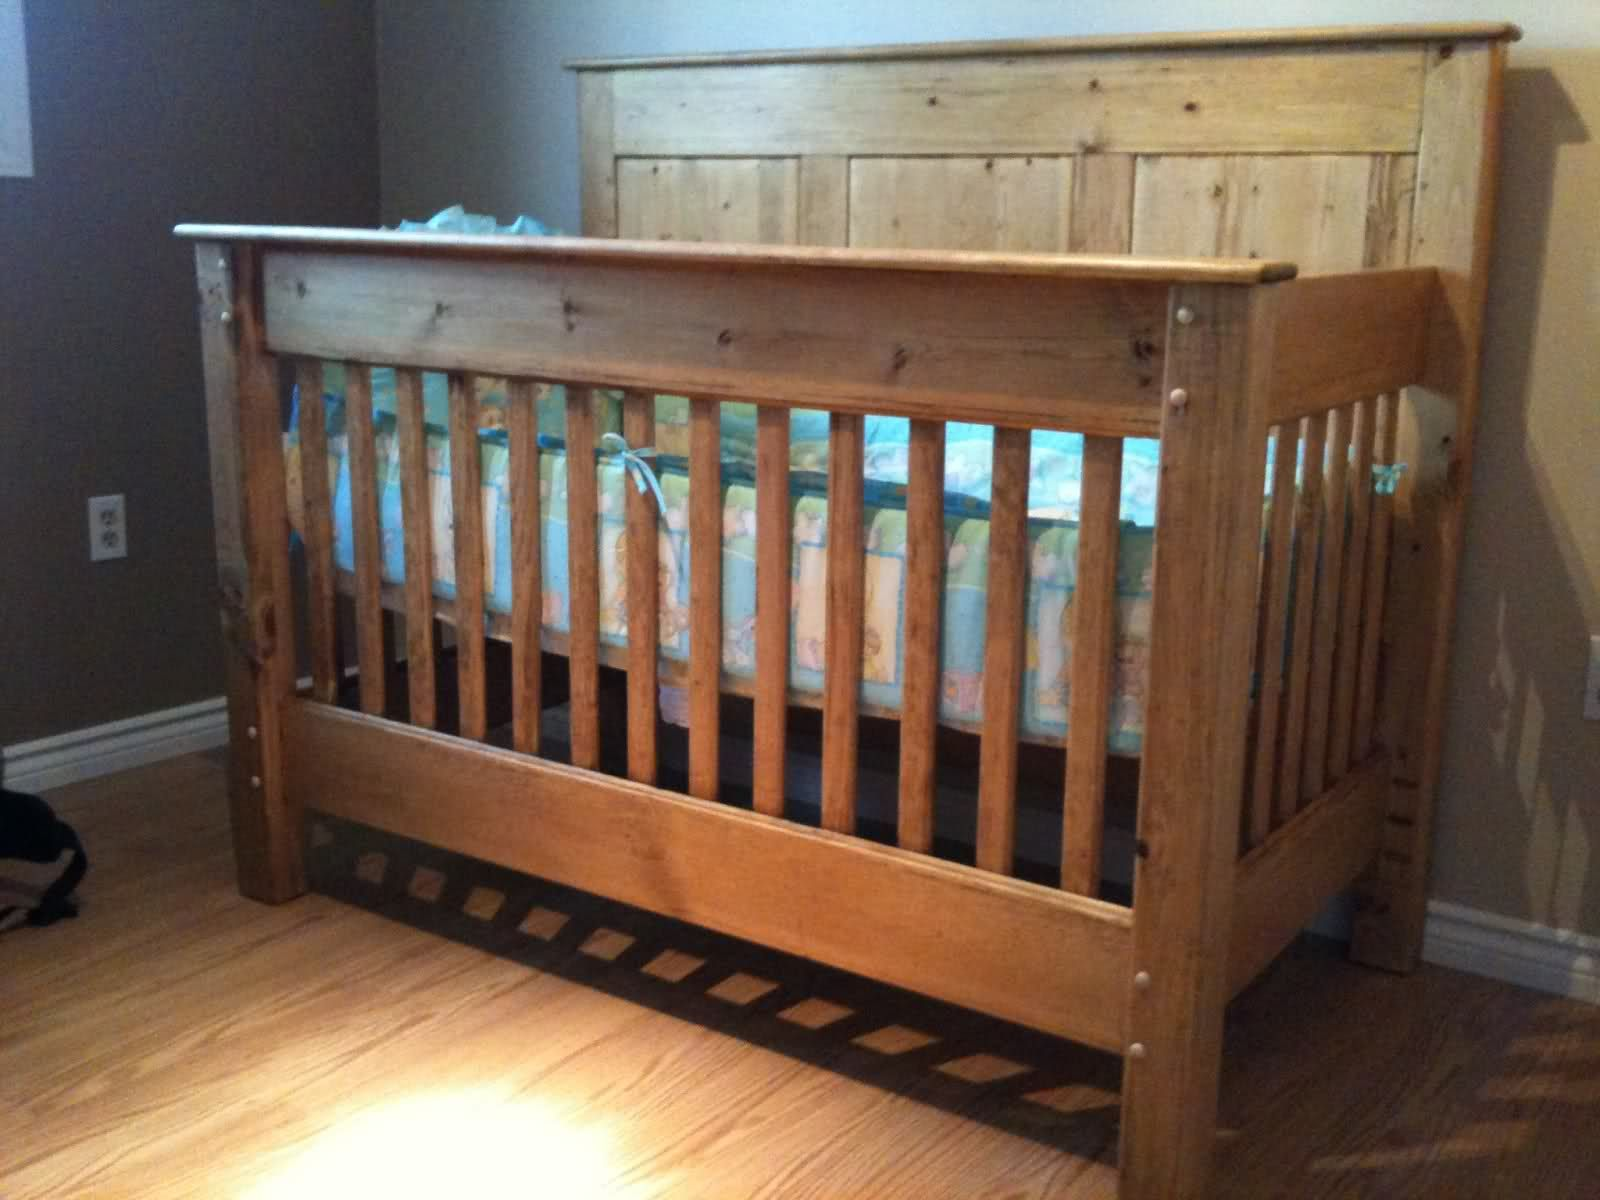 crib designs woodworking pine can be your friend if you treat it with care baby stuff